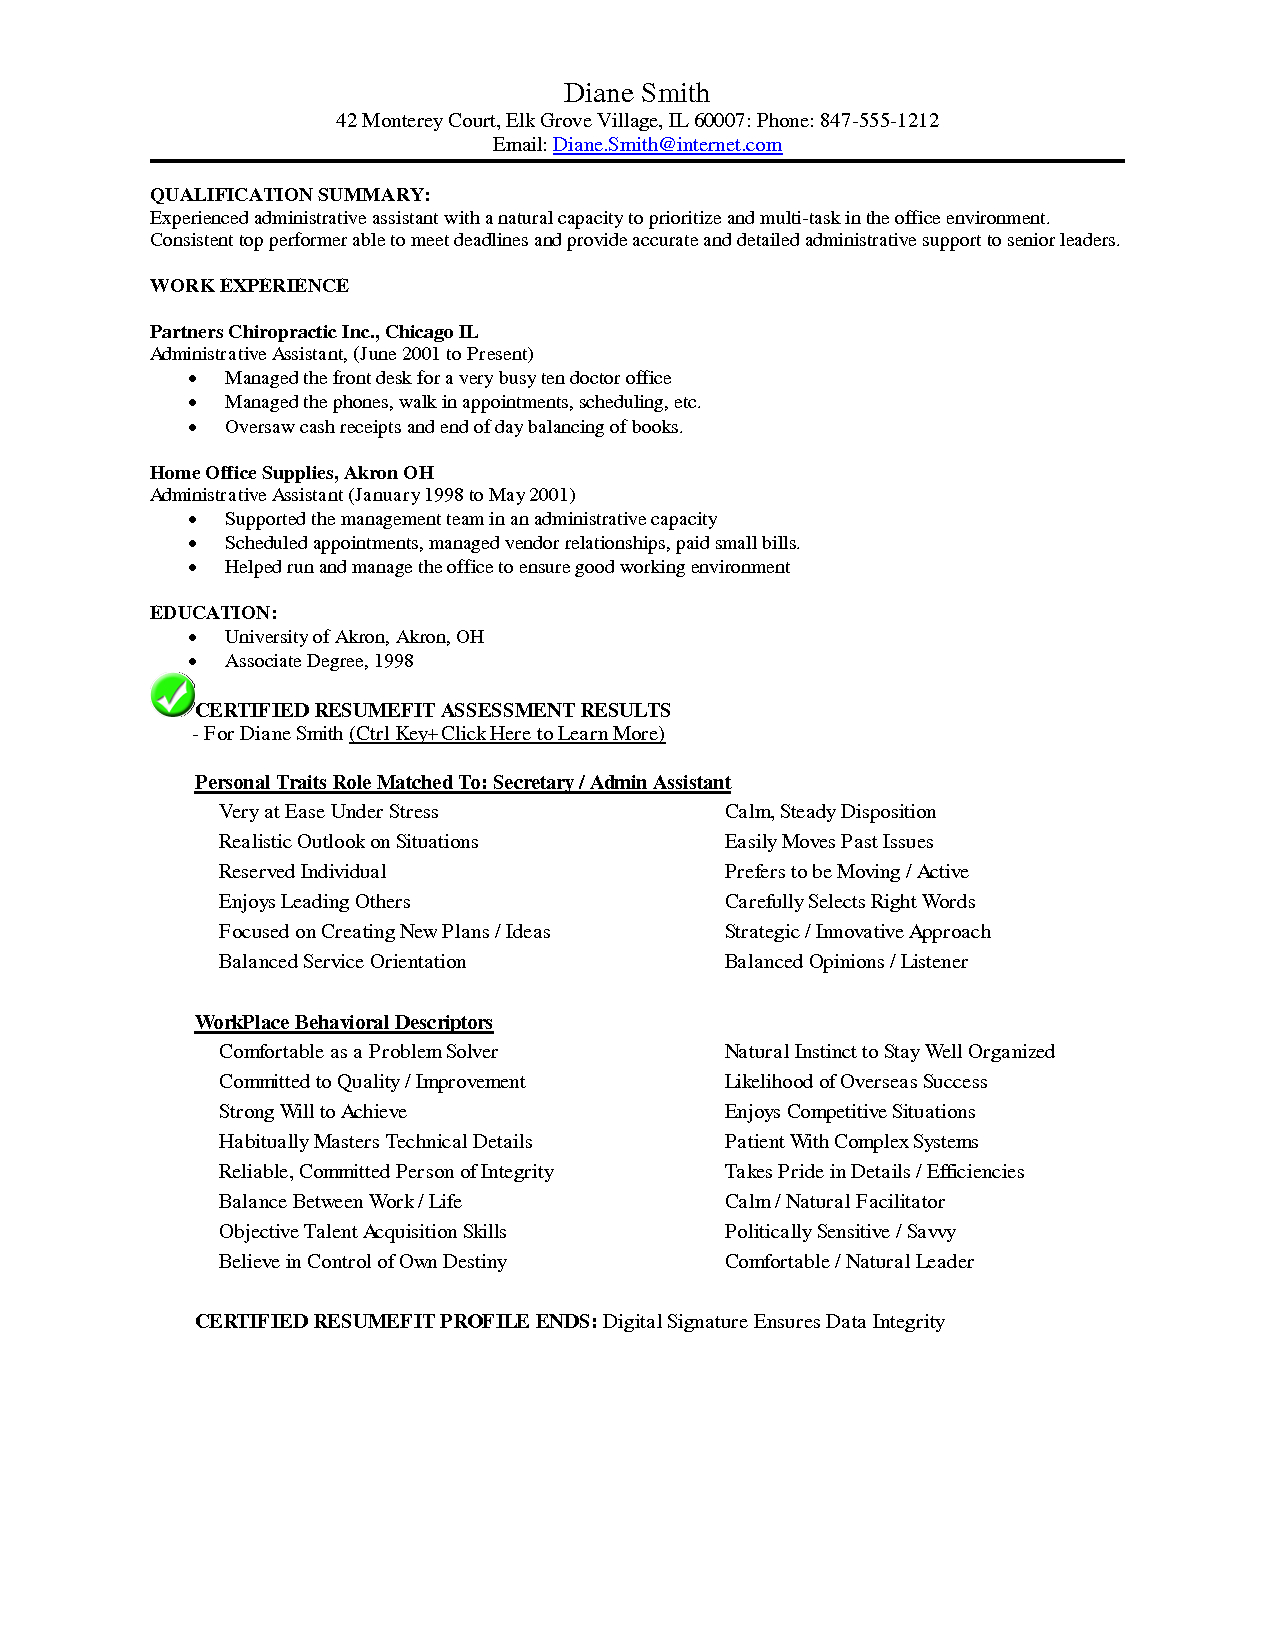 Medical Office Manager Resume - Chiropractic Resume Example Resumes Pinterest